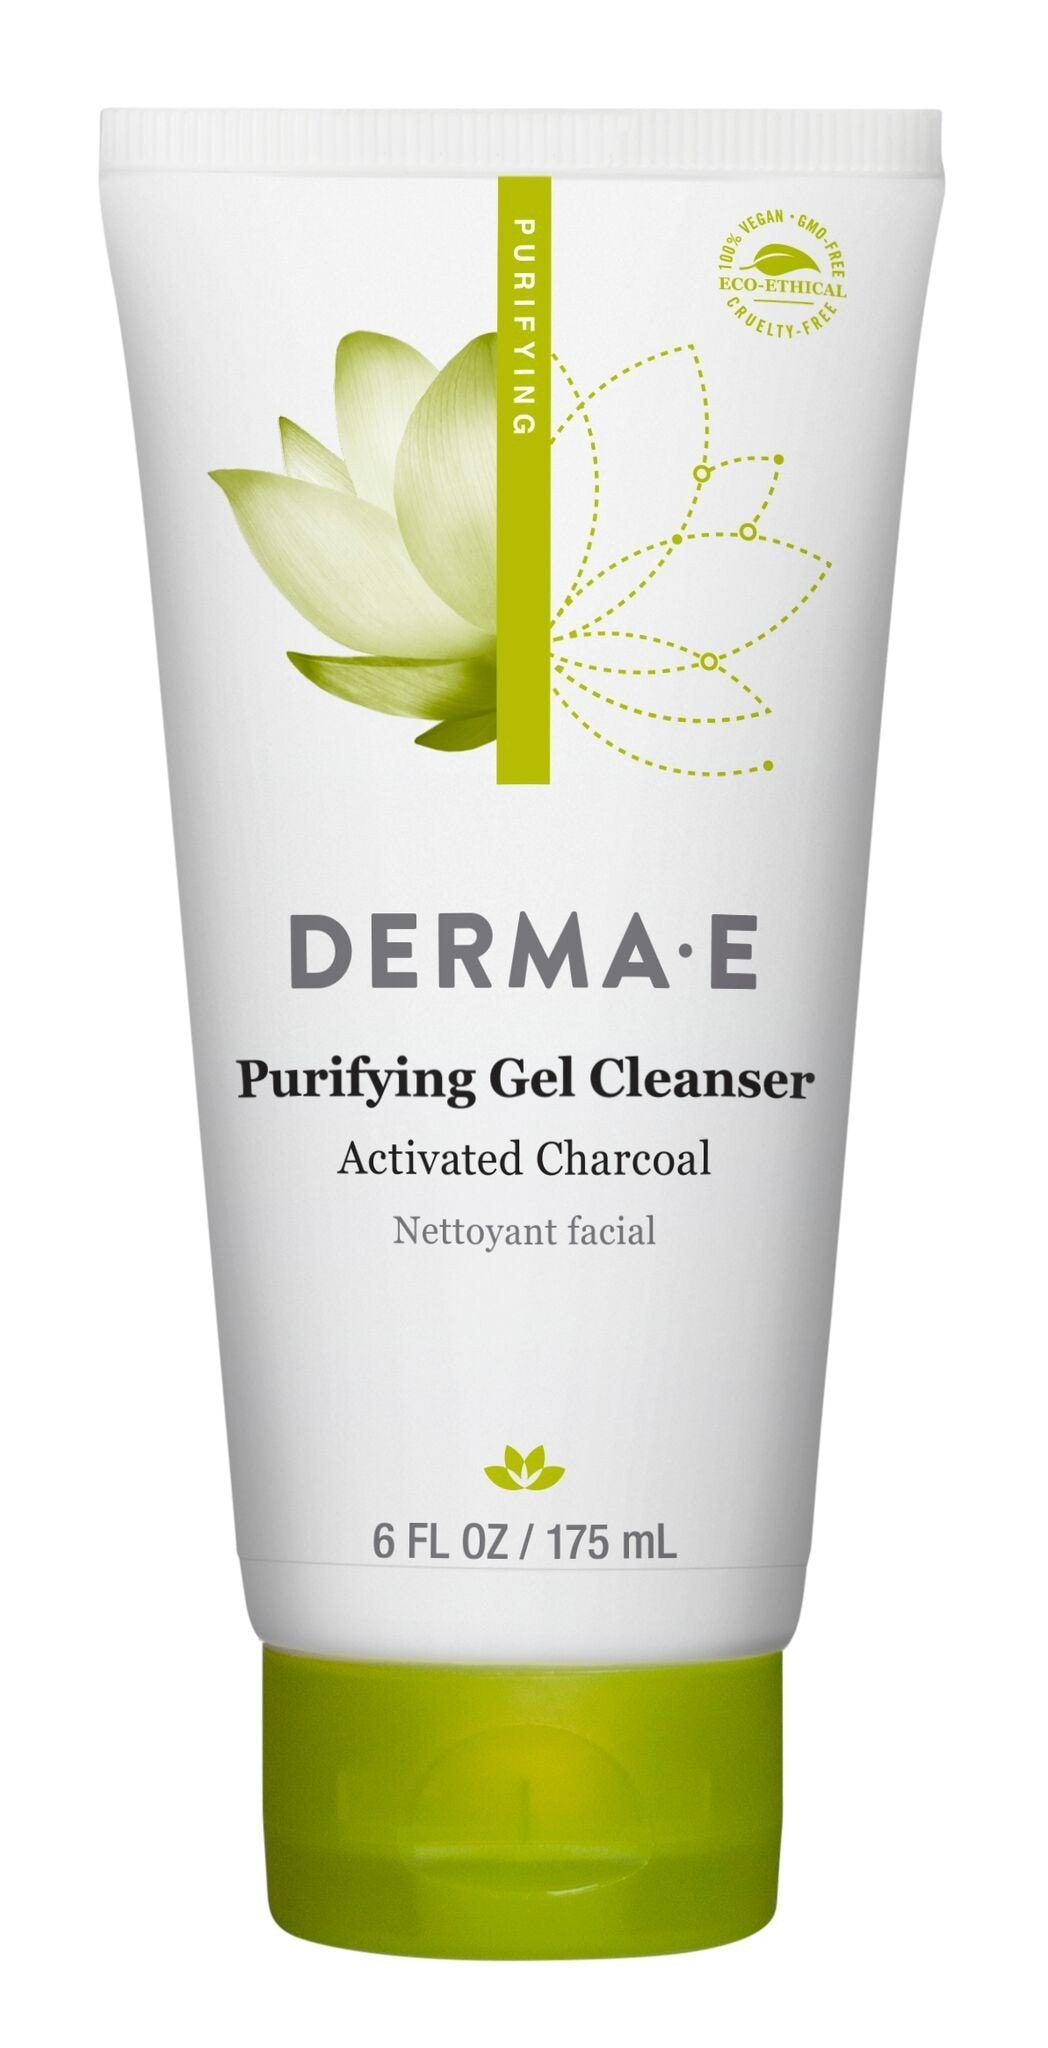 Personal Care - Derma E - Purifying Gel Cleanser, 175ml